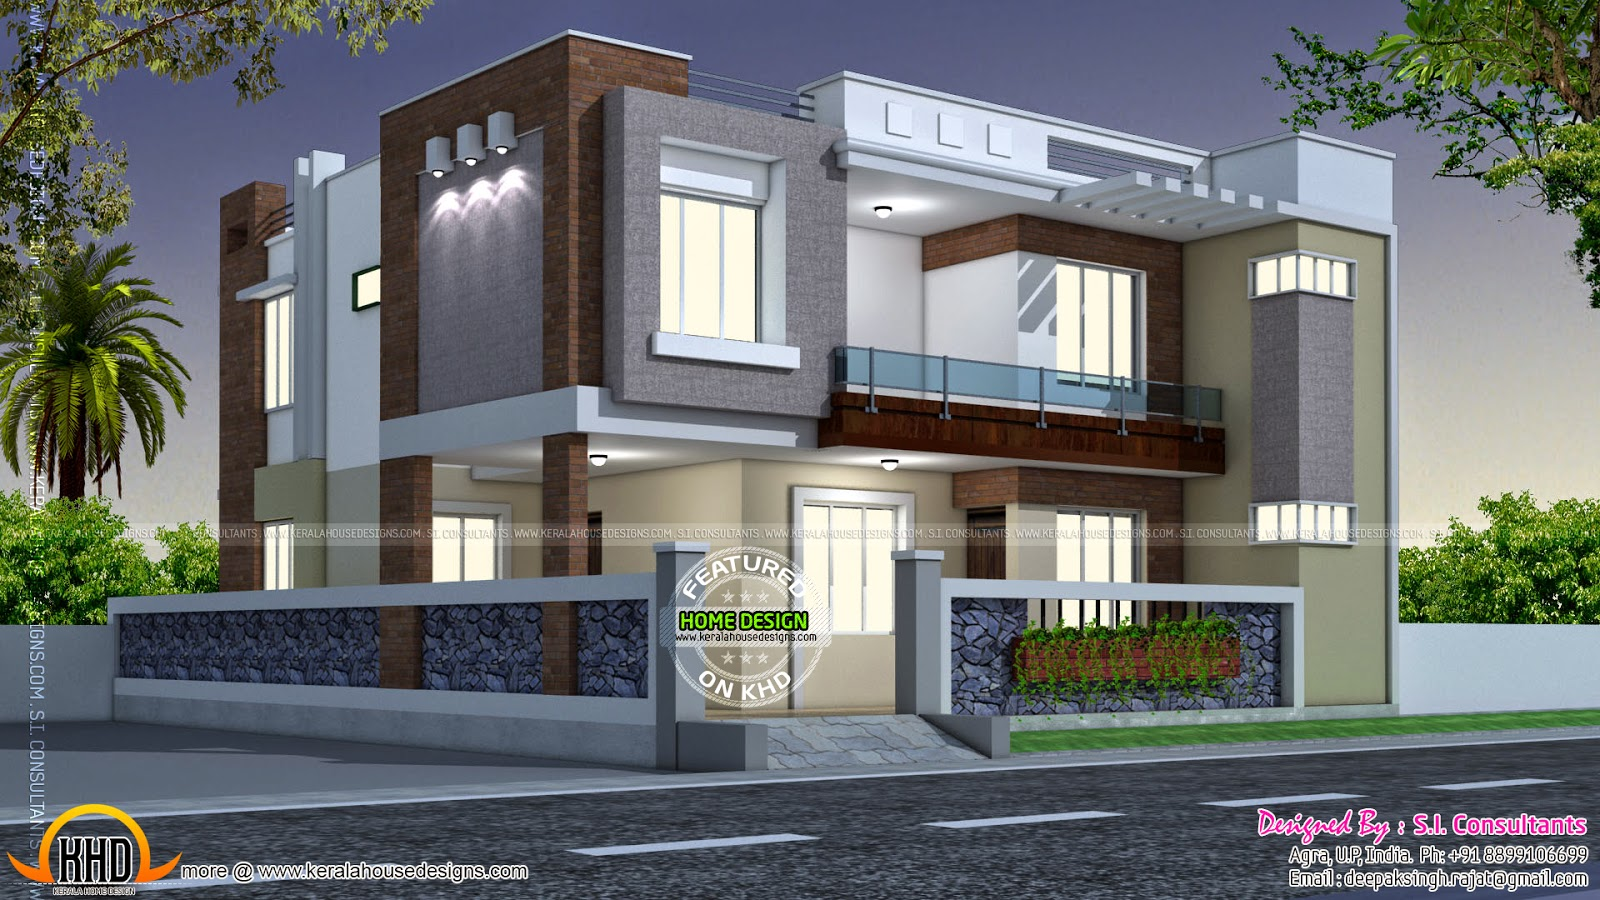 Modern indian home design front view joy studio design House designs indian style pictures